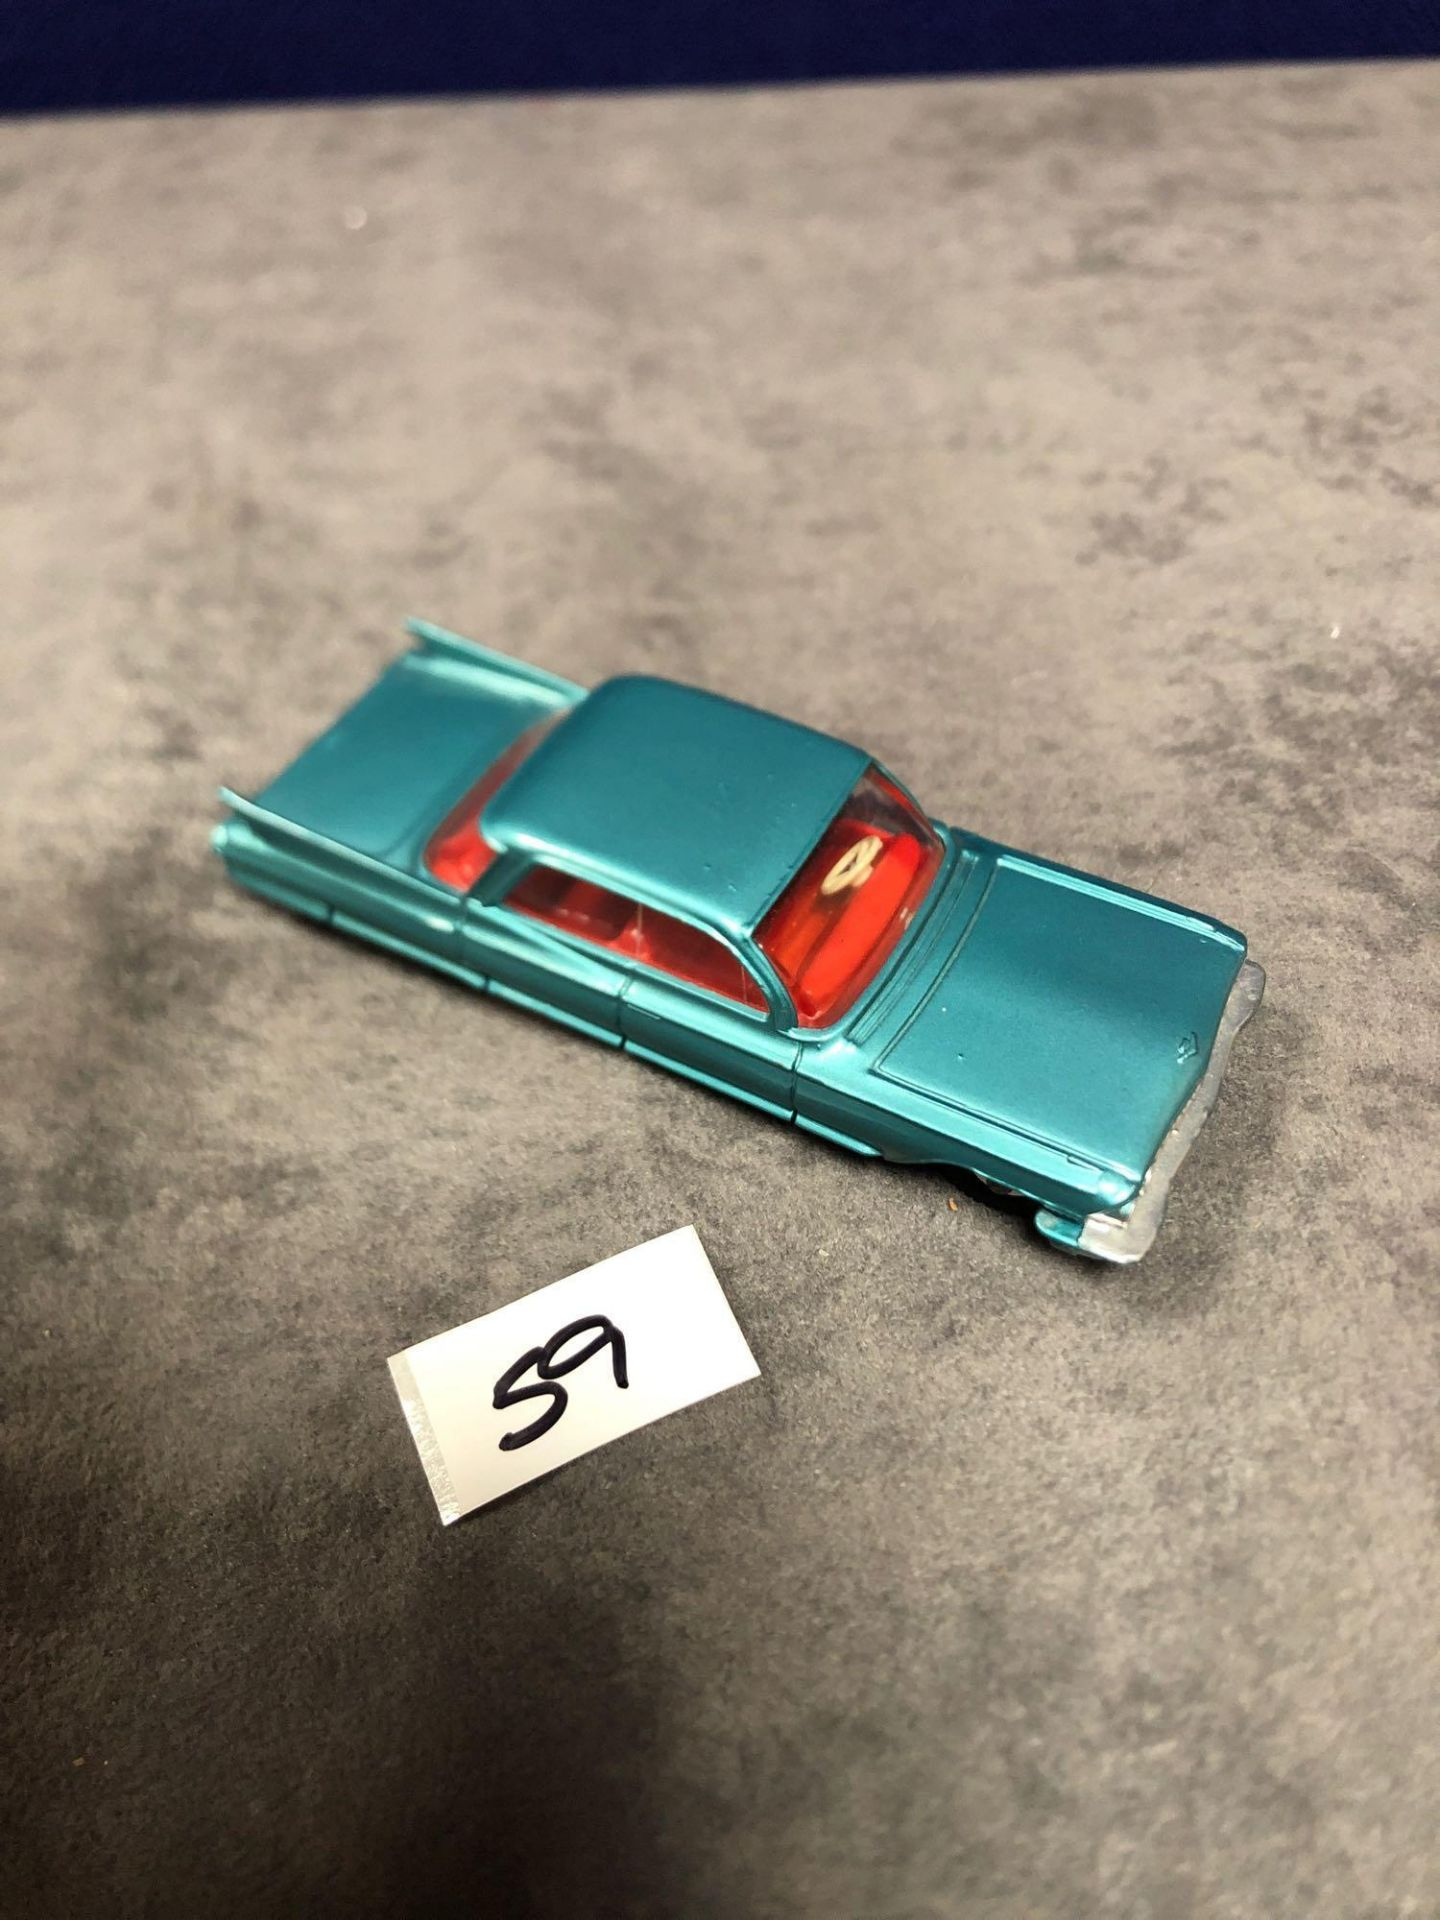 Dinky #147 Cadillac 62 Metallic Green - Red Interior And Spun Hubs 1962-1969. Unboxed Mint Lovely - Image 4 of 4